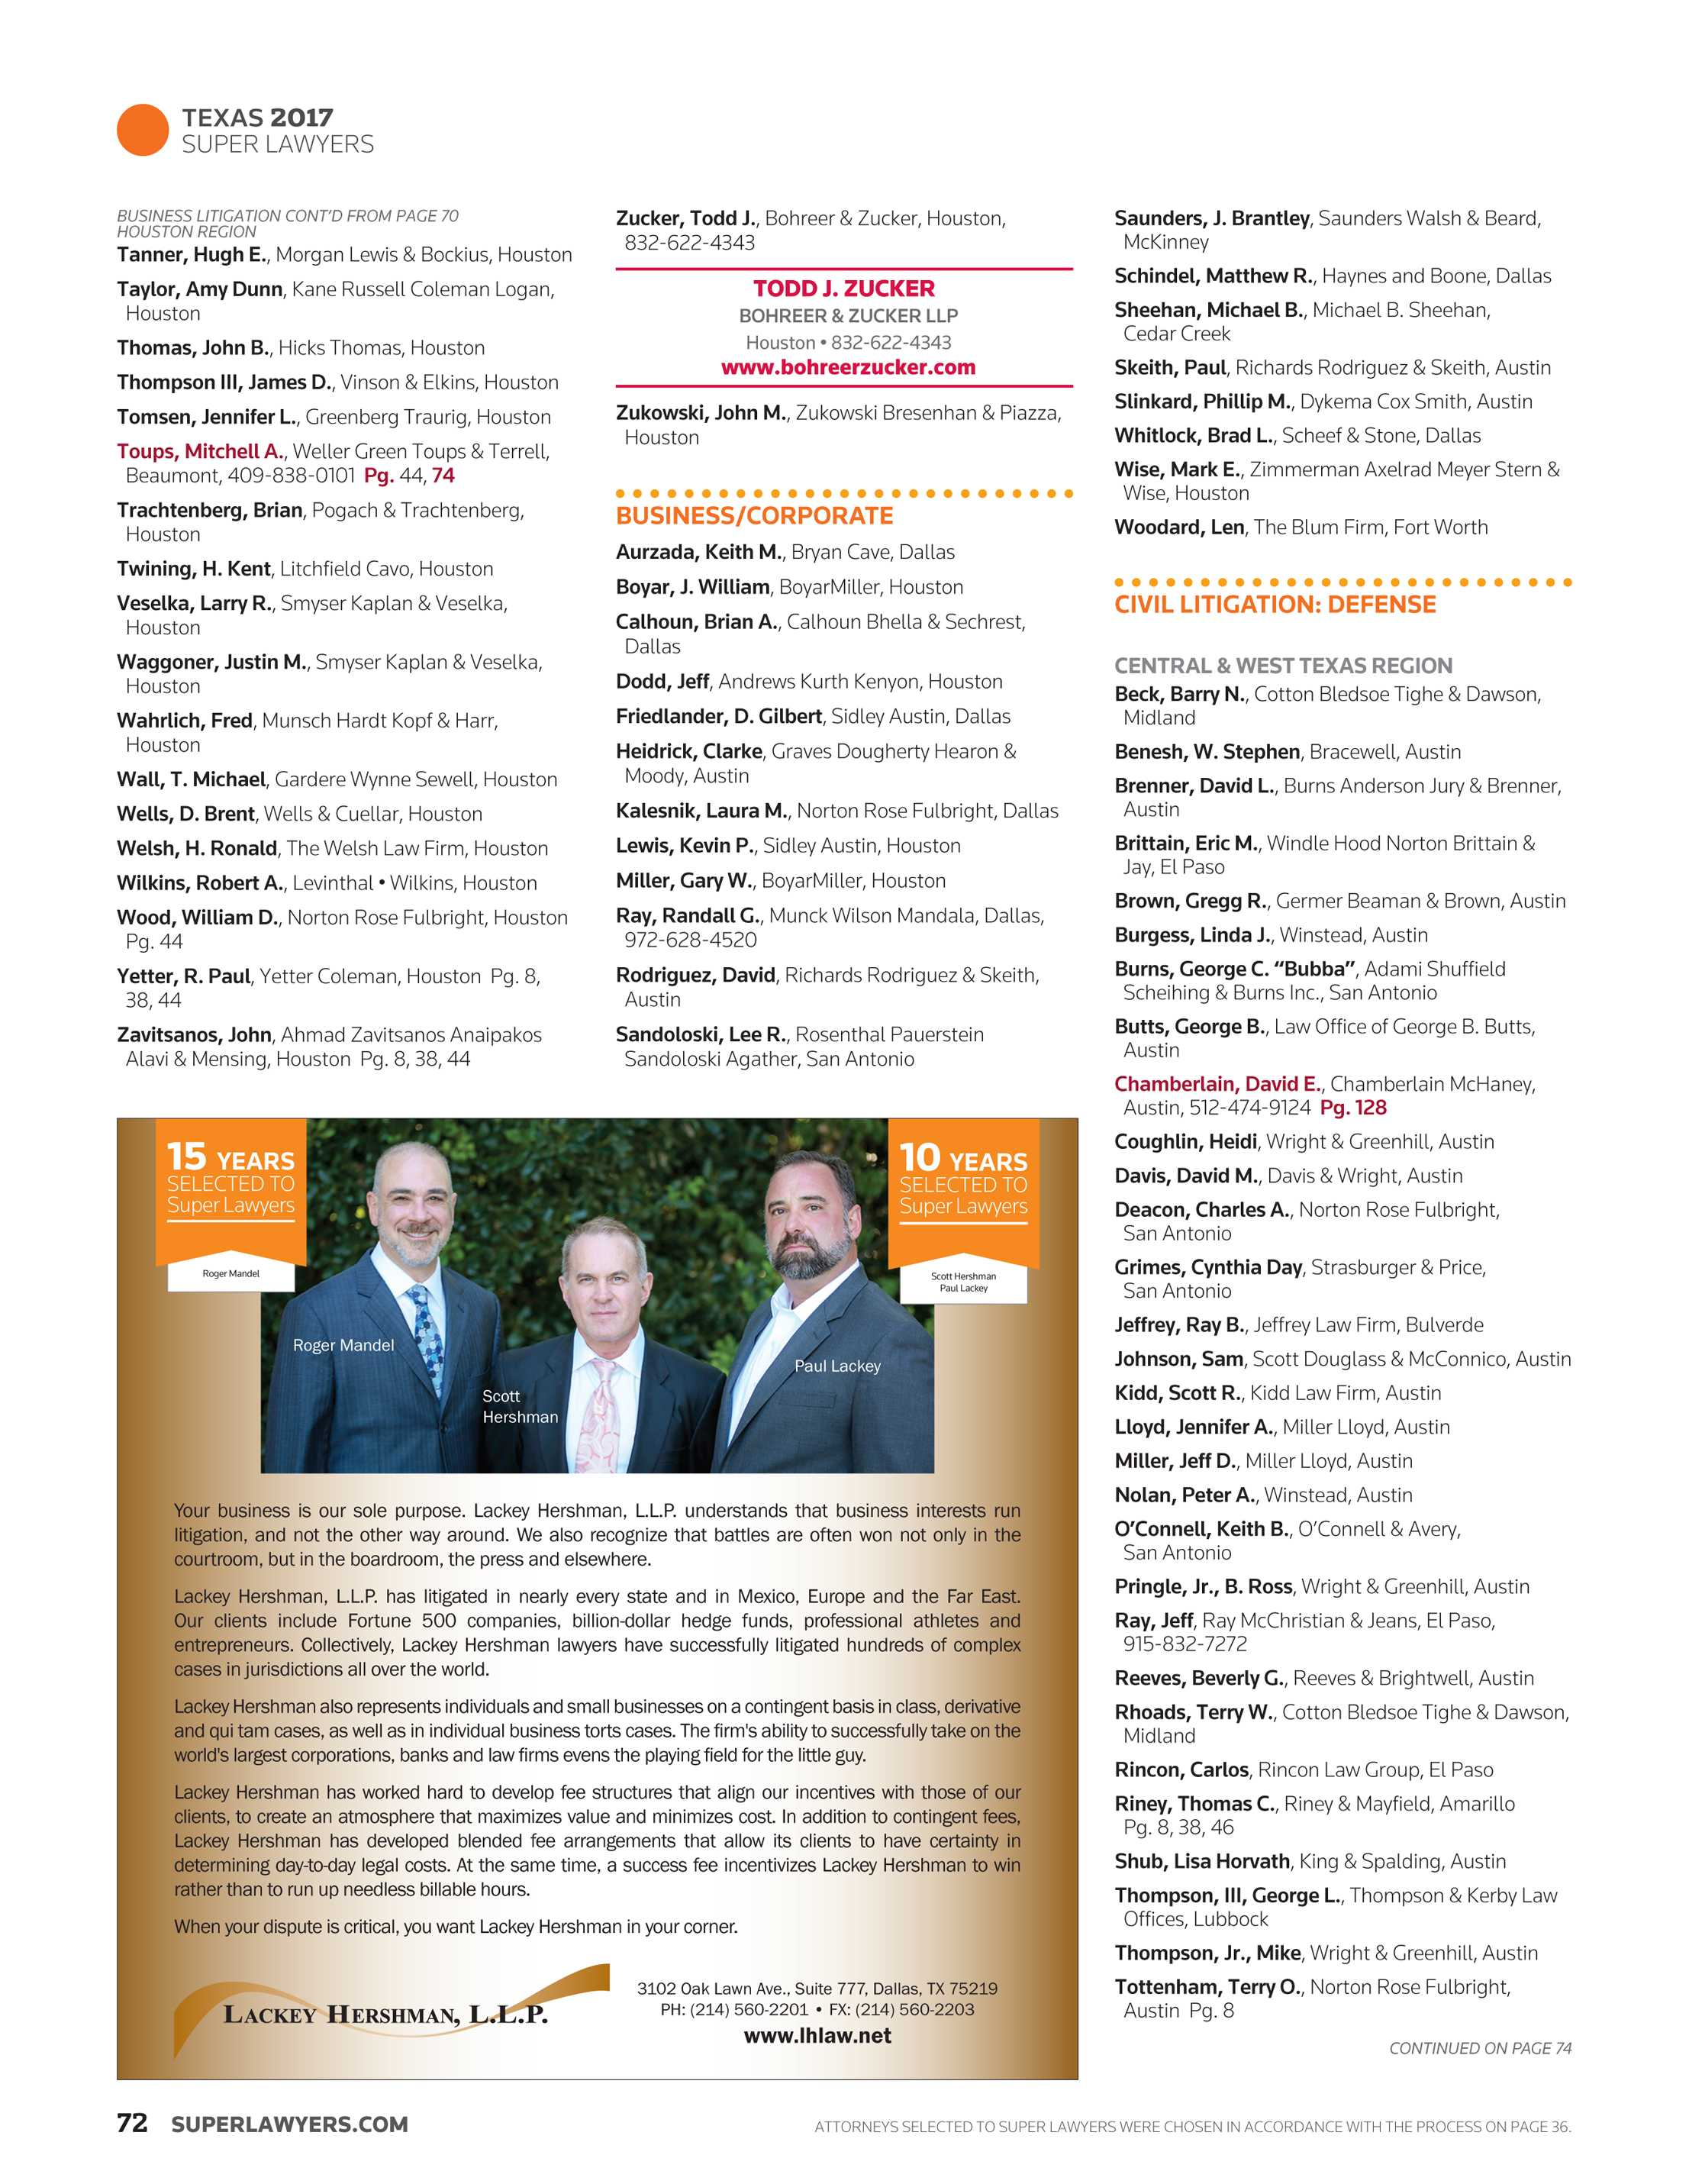 Super Lawyers - Texas 2017 - page 72